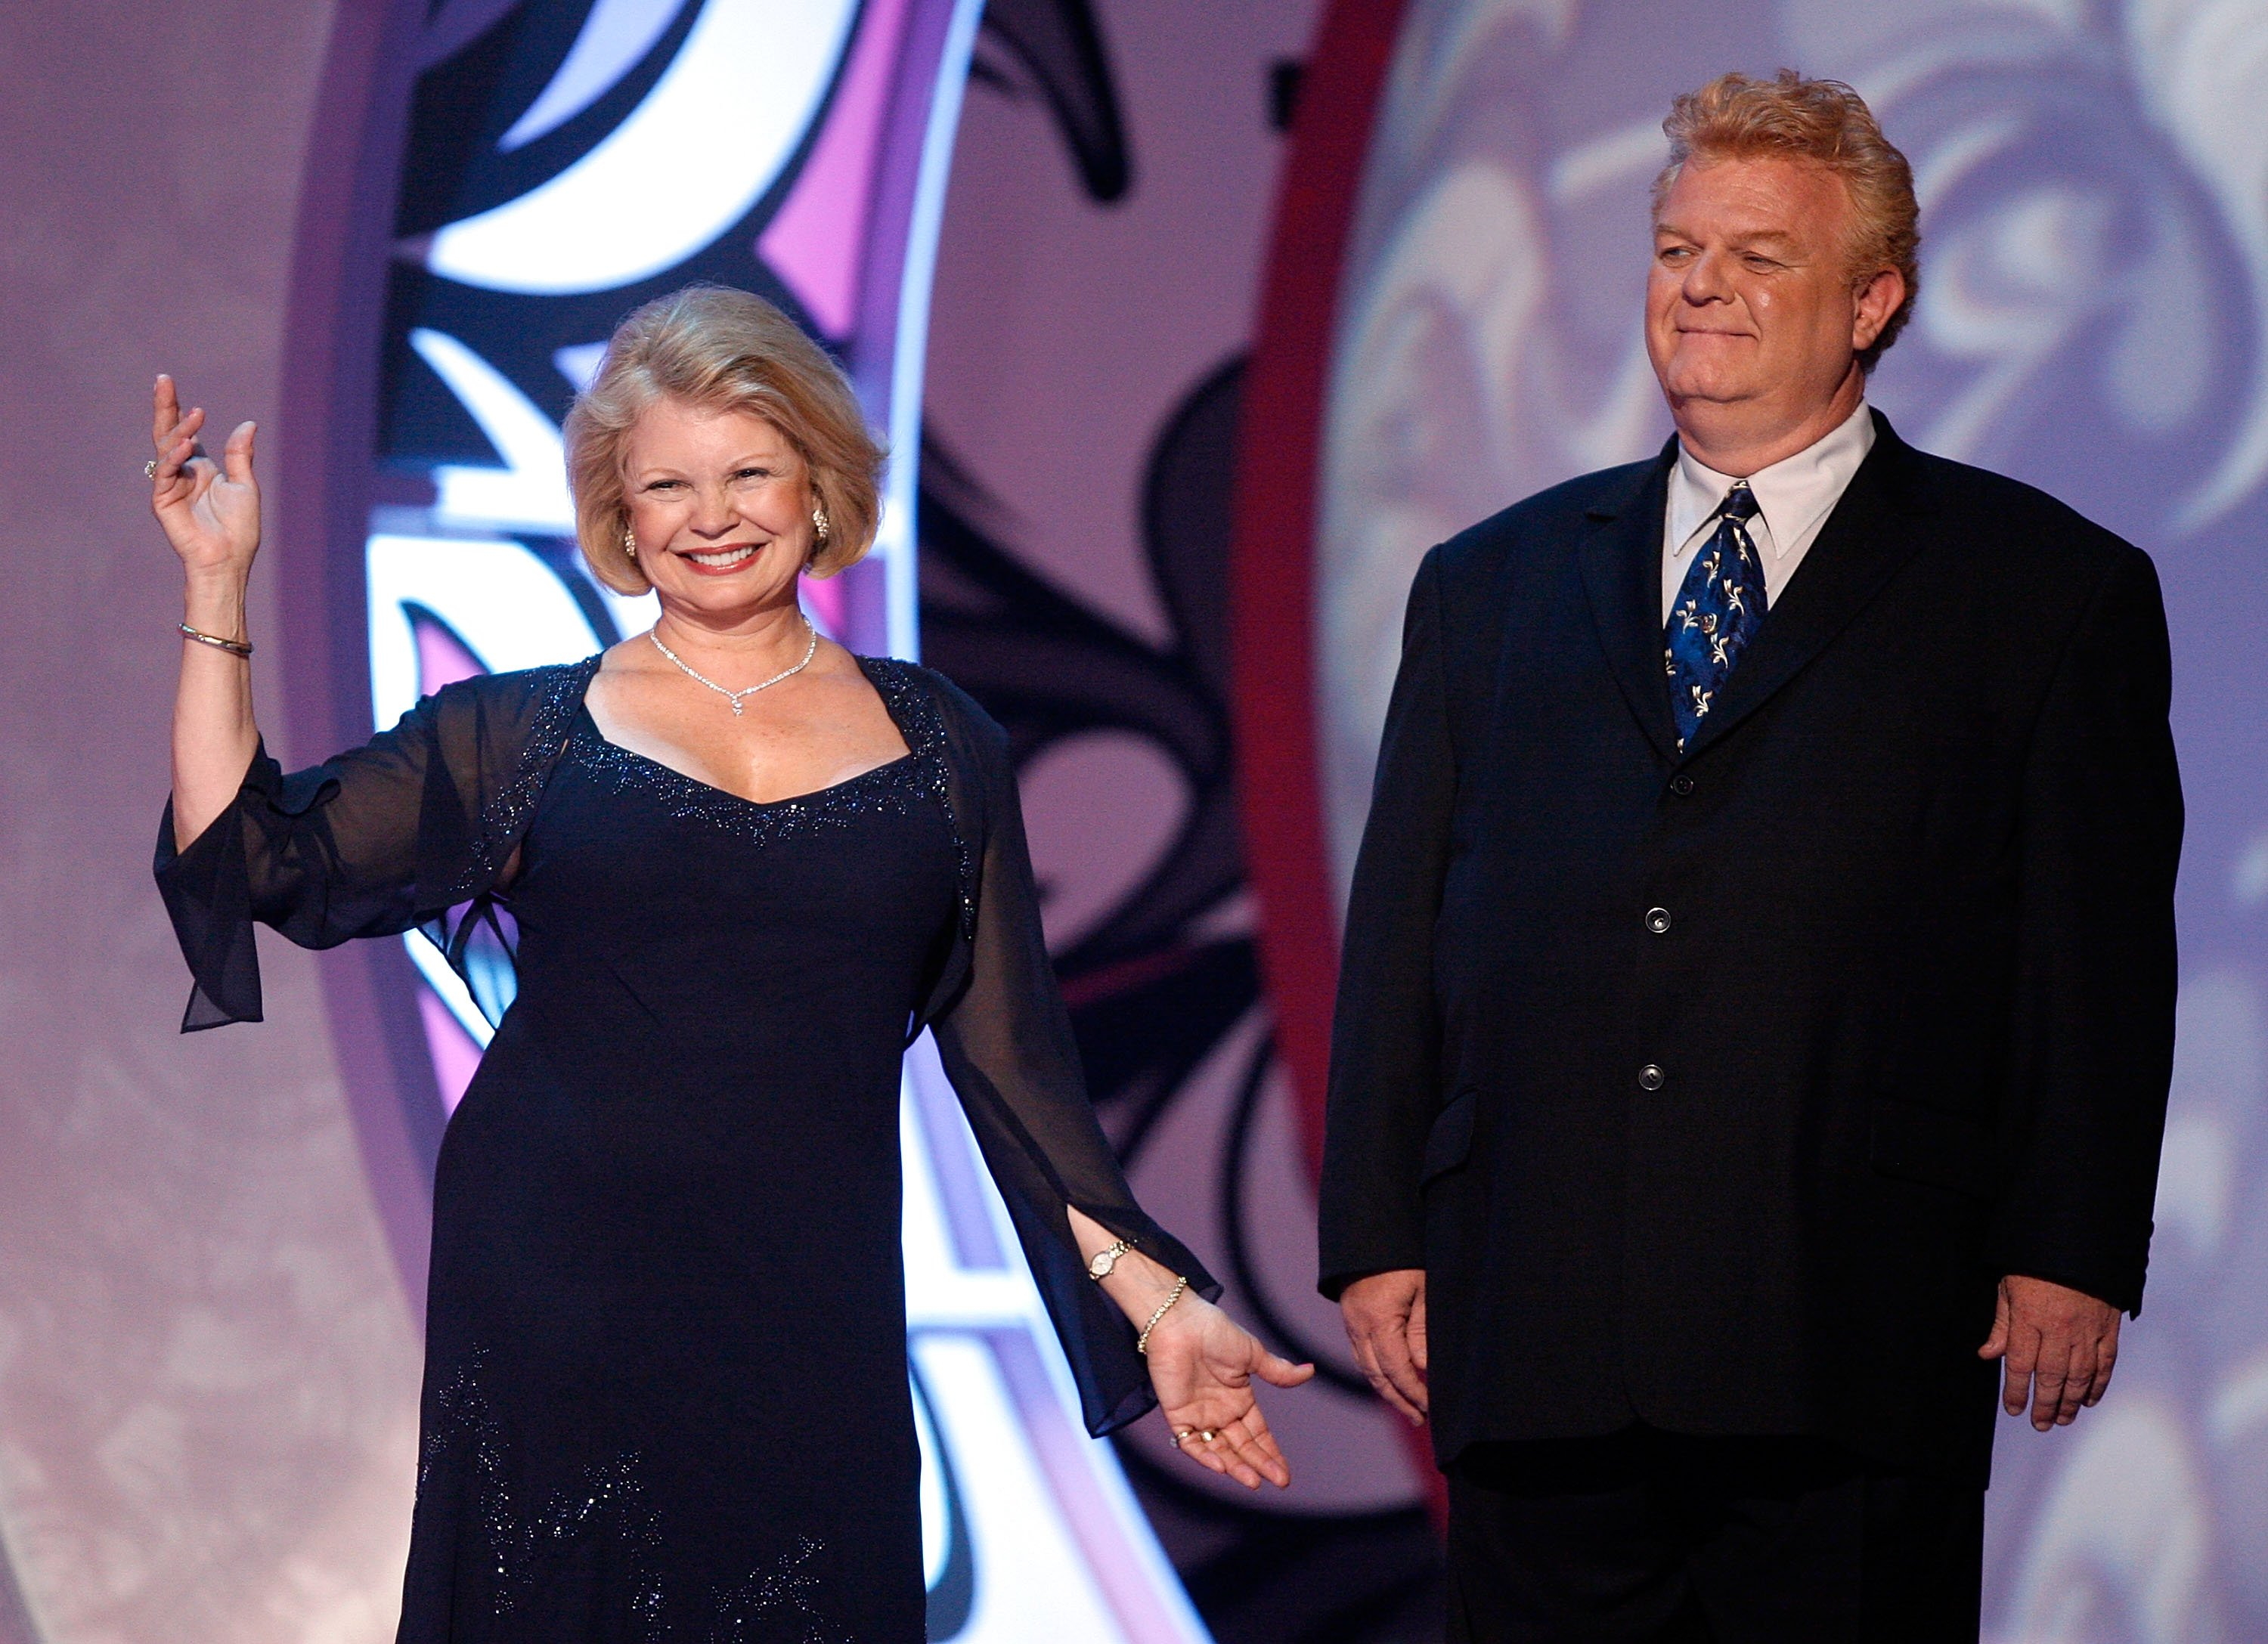 Kathy Garver and Johnny Whitaker at the 5th Annual TV Land Awards held at Barker Hangar on April 14, 2007 | Photo: GettyImages